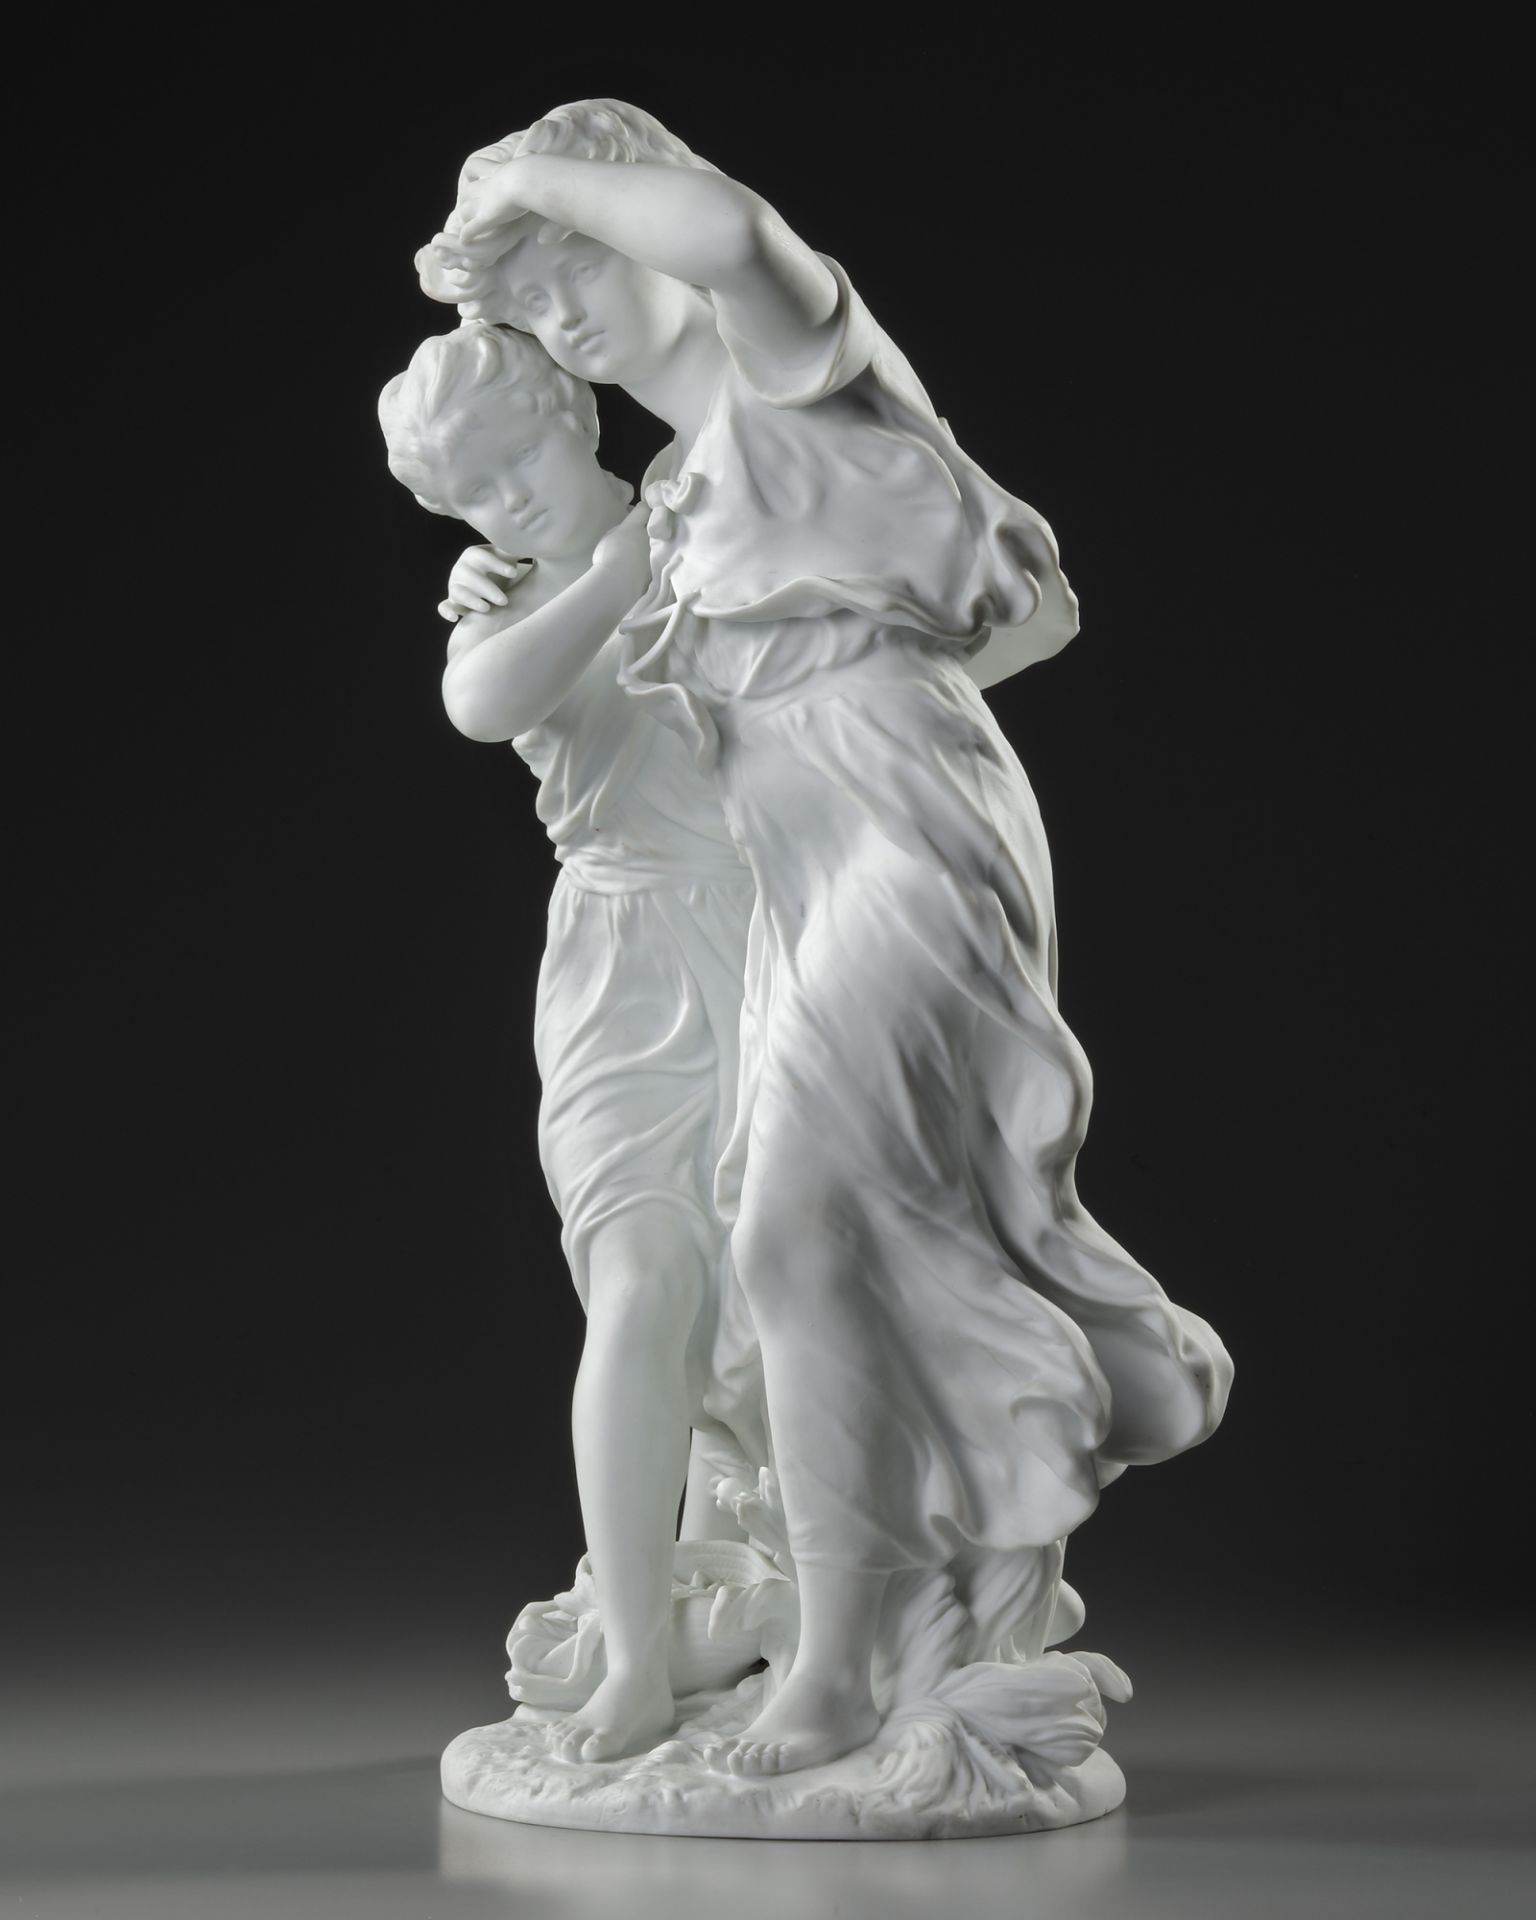 A FRENCH BISCUIT STATUE, SIGNED BY MOREAU (1834-1917) - Image 3 of 5